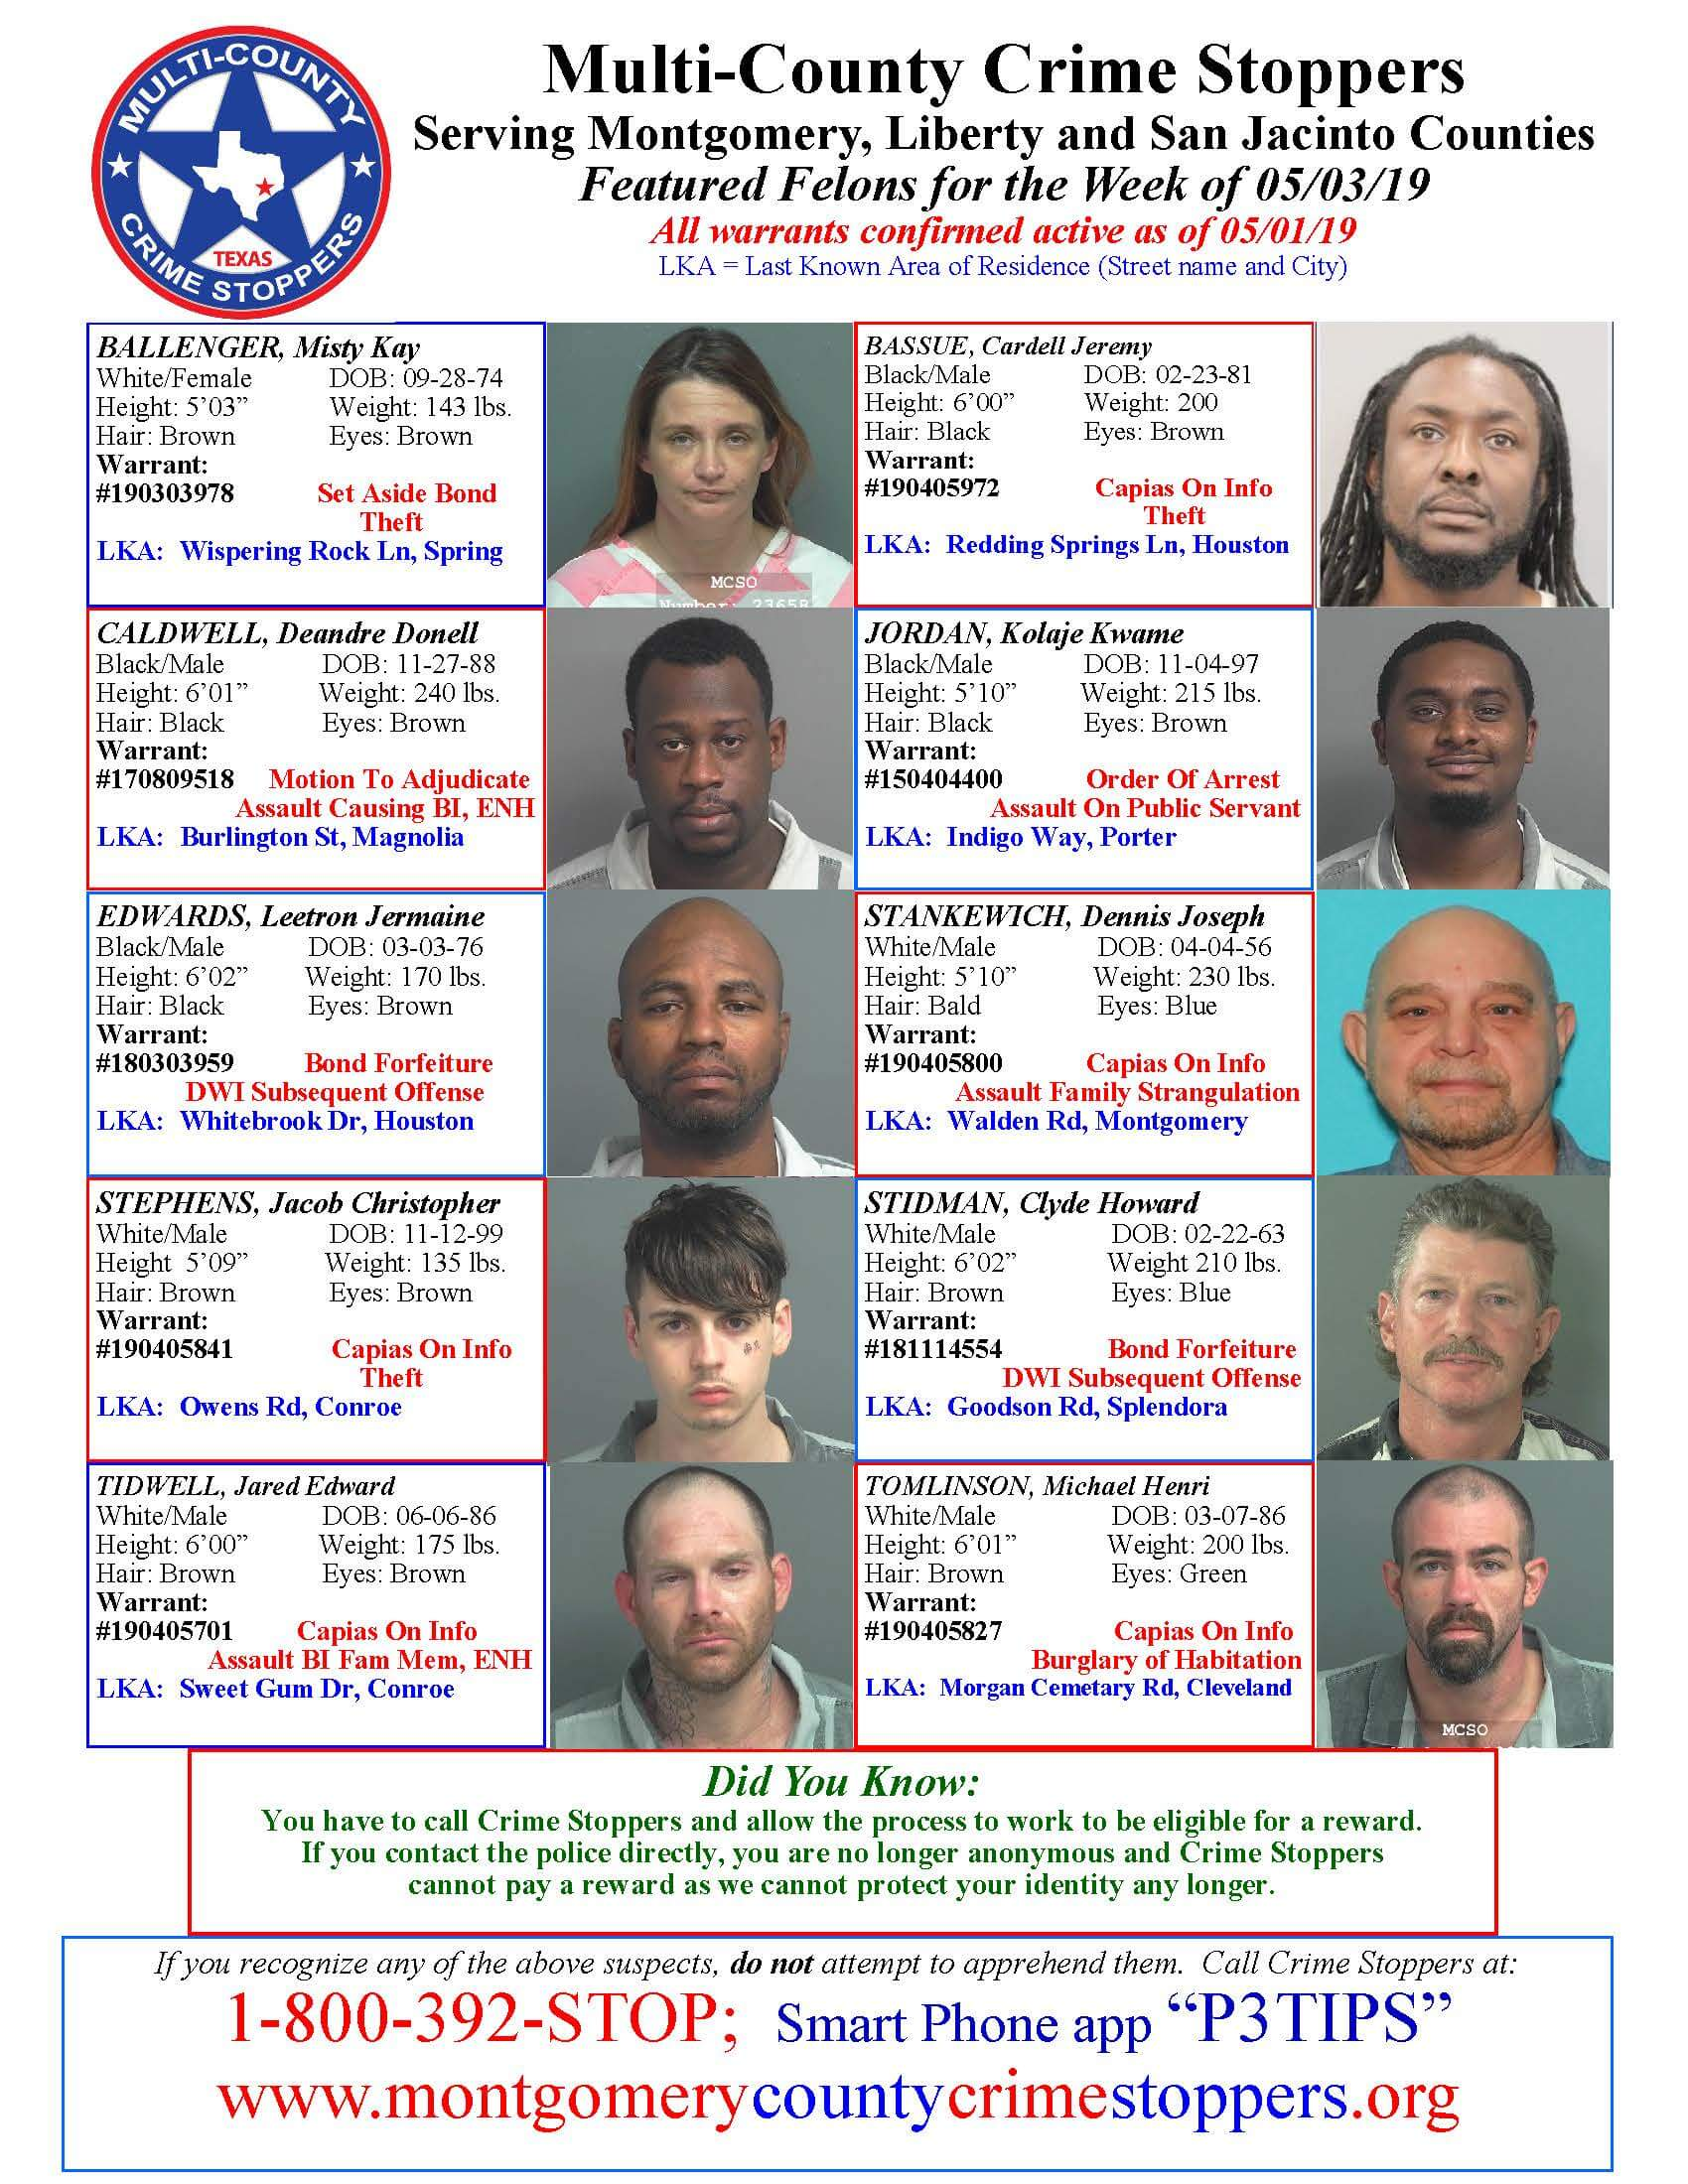 Crime Stoppers Featured Felons 05/03/19